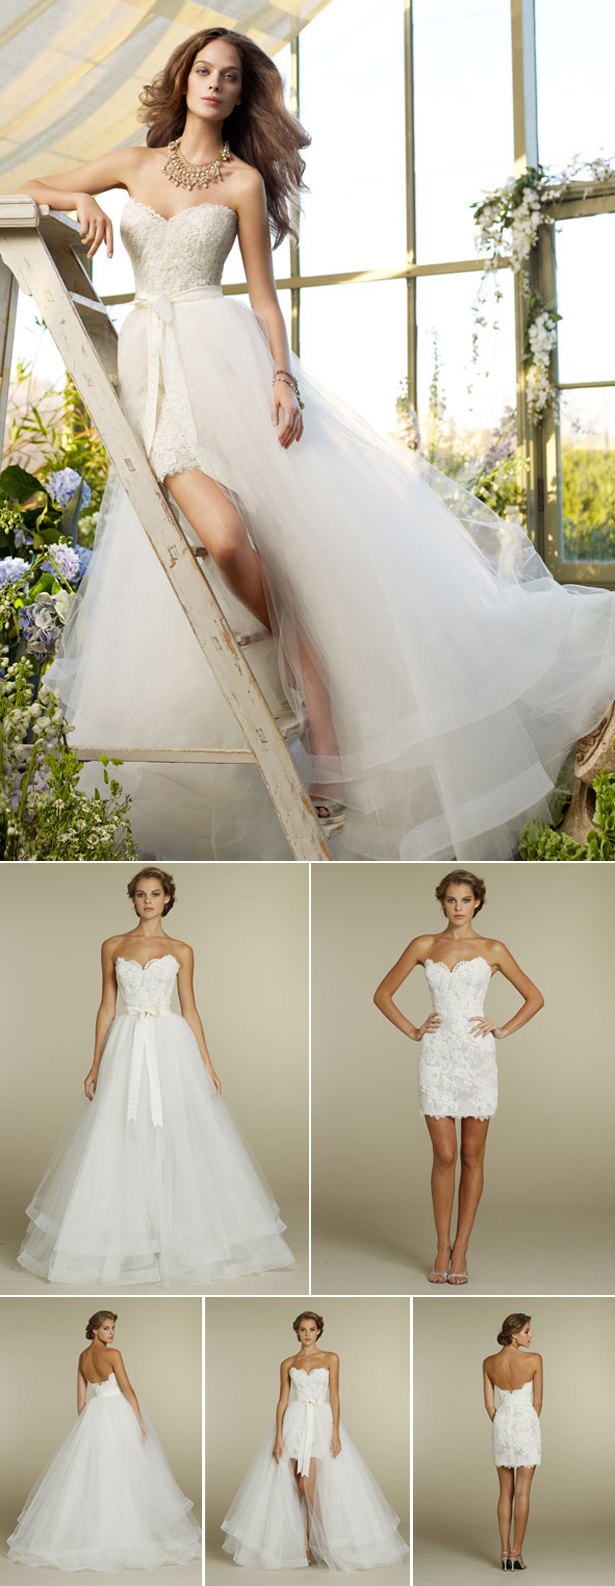 Style TK2210 by Tara Keely, JLM Couture | Confetti.co.uk